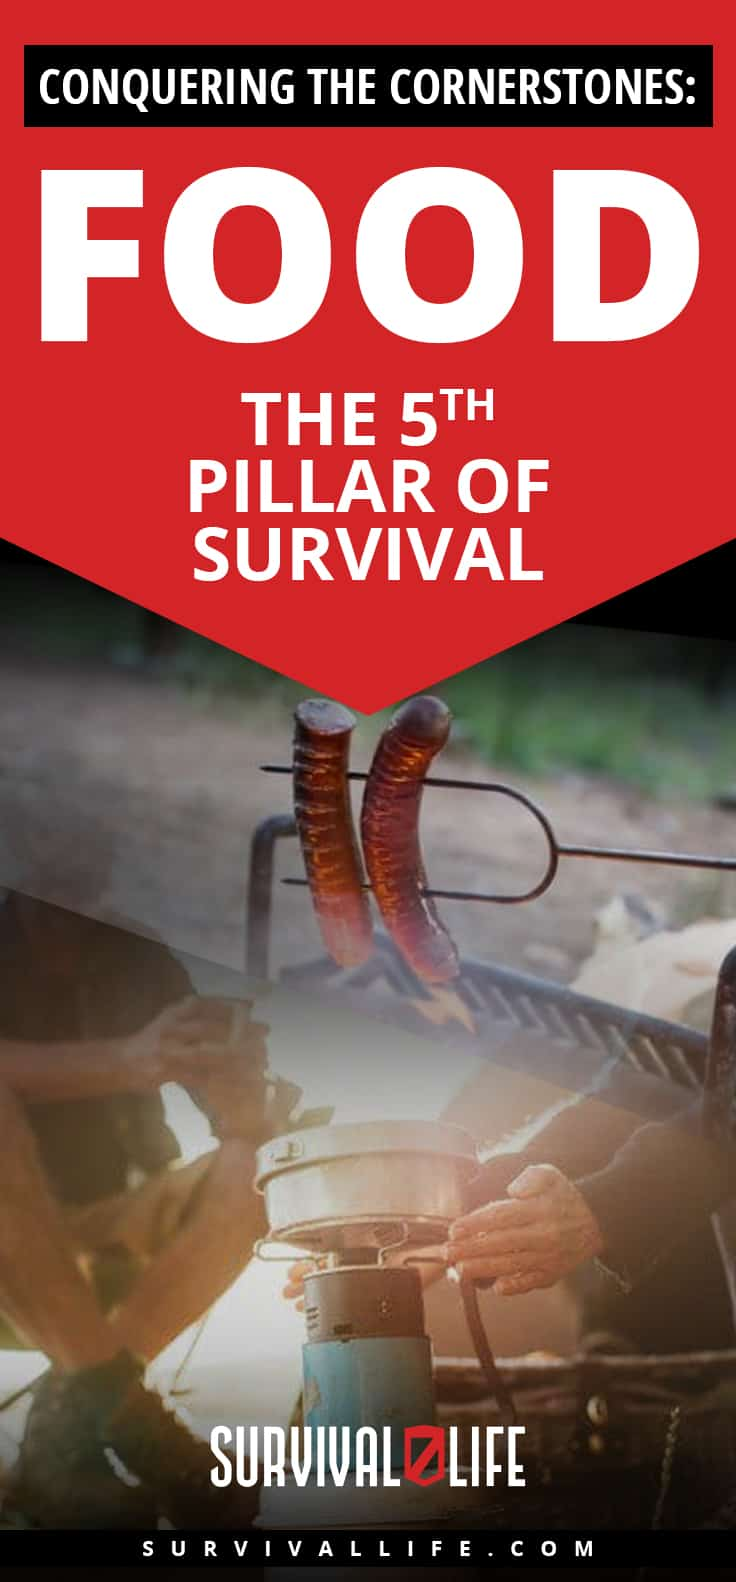 Check out Conquering the Cornerstones: Food - the 5th Pillar of Survival at https://survivallife.com/food-pillar-survival/